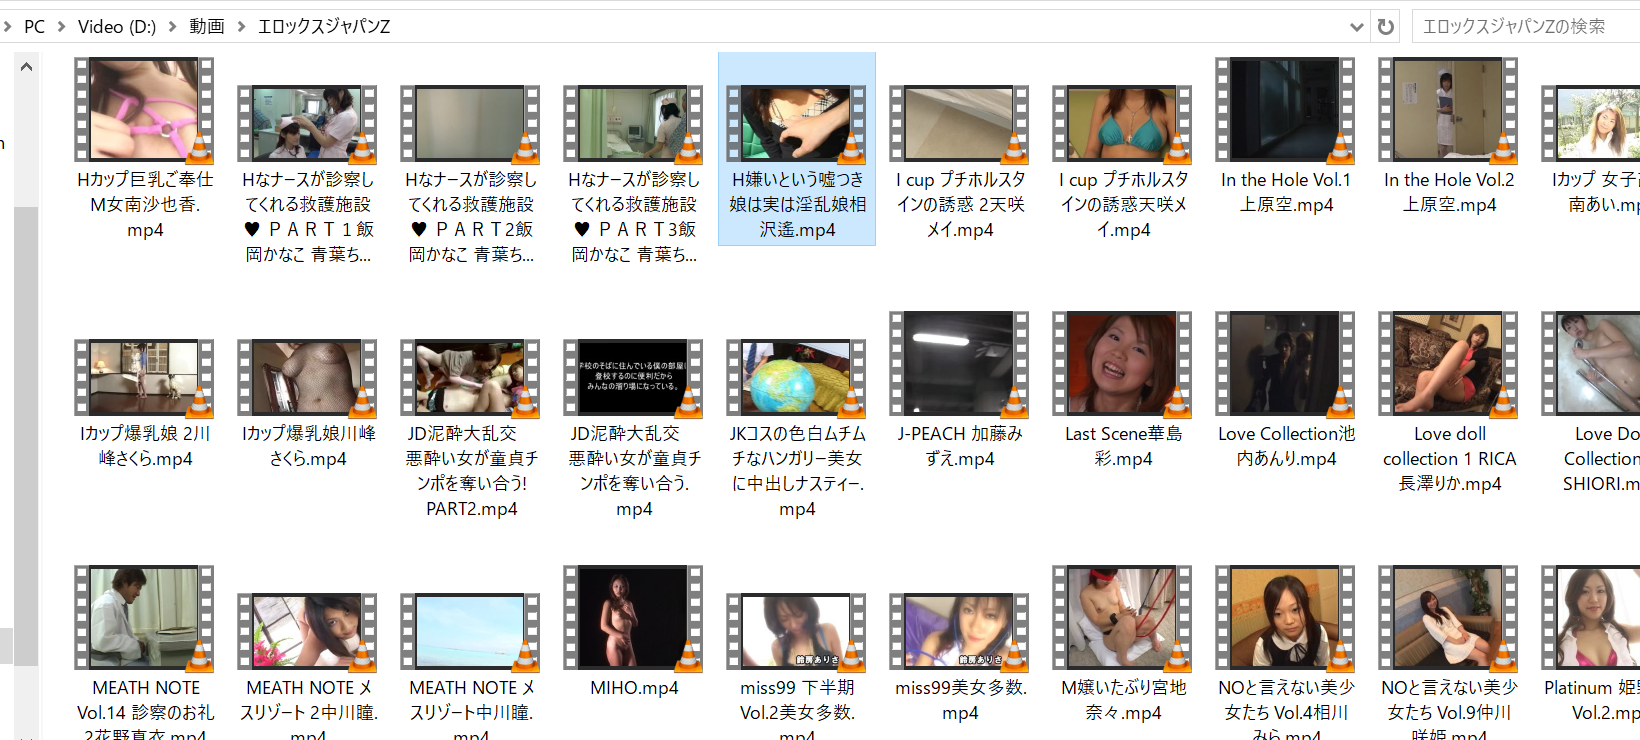 some of the uncensored JAV erotic videos that I downloaded and got from EROX JAPAN Z